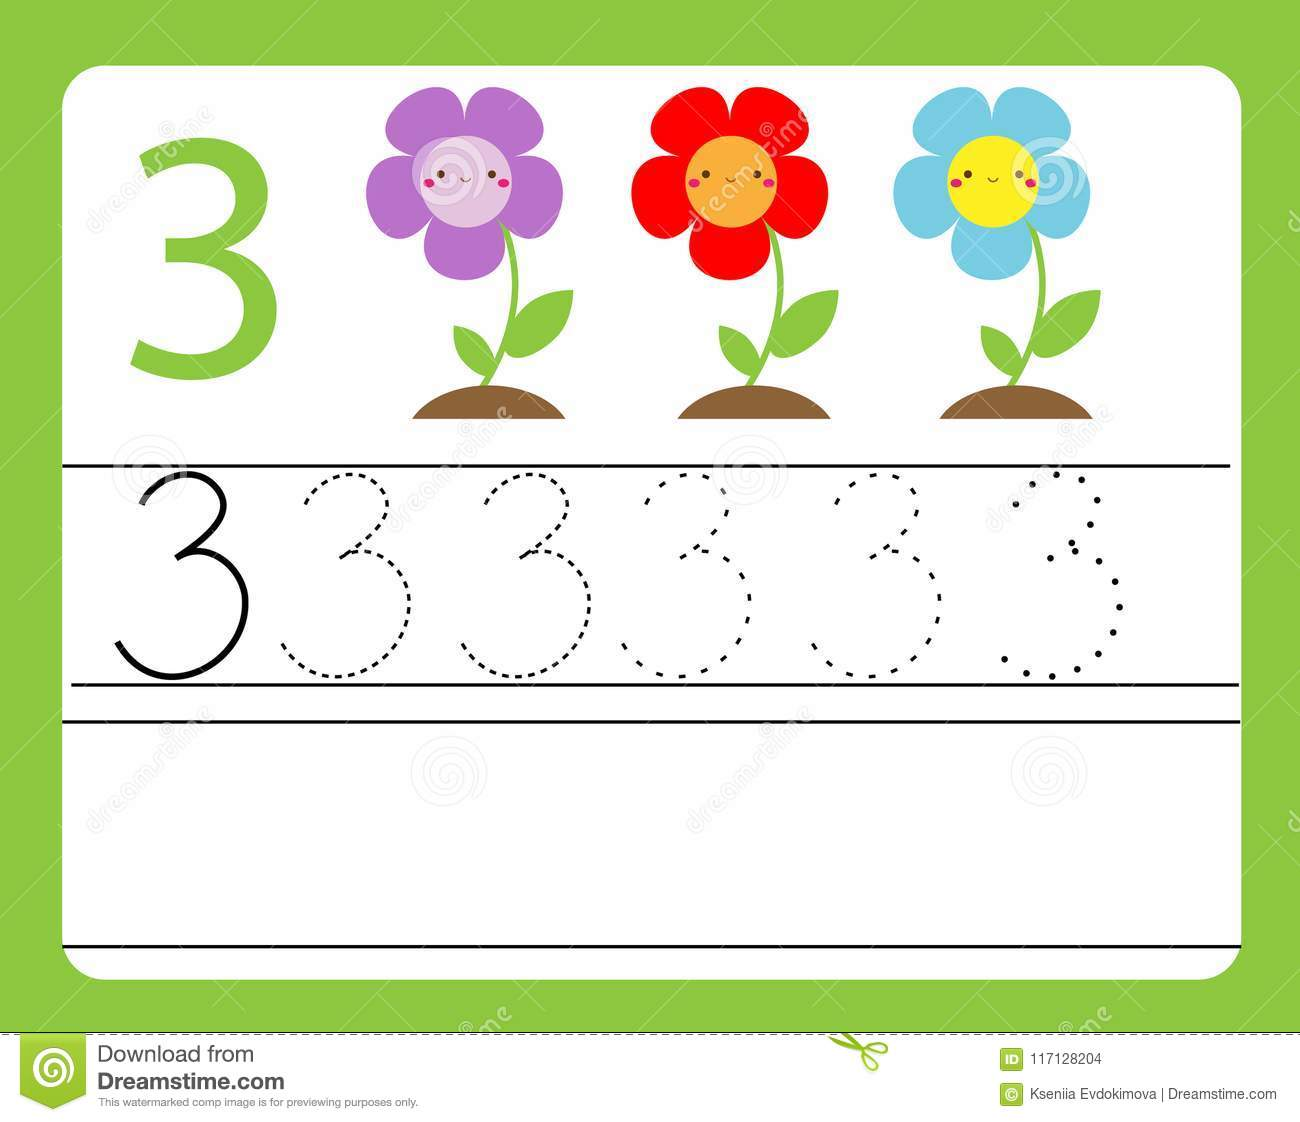 Handwriting Practice Learning Numbers With Cute Characters Number Three Educational Printable Worksheet For Kids And Toddlers W Stock Vector Illustration Of Cute Preschool 117128204